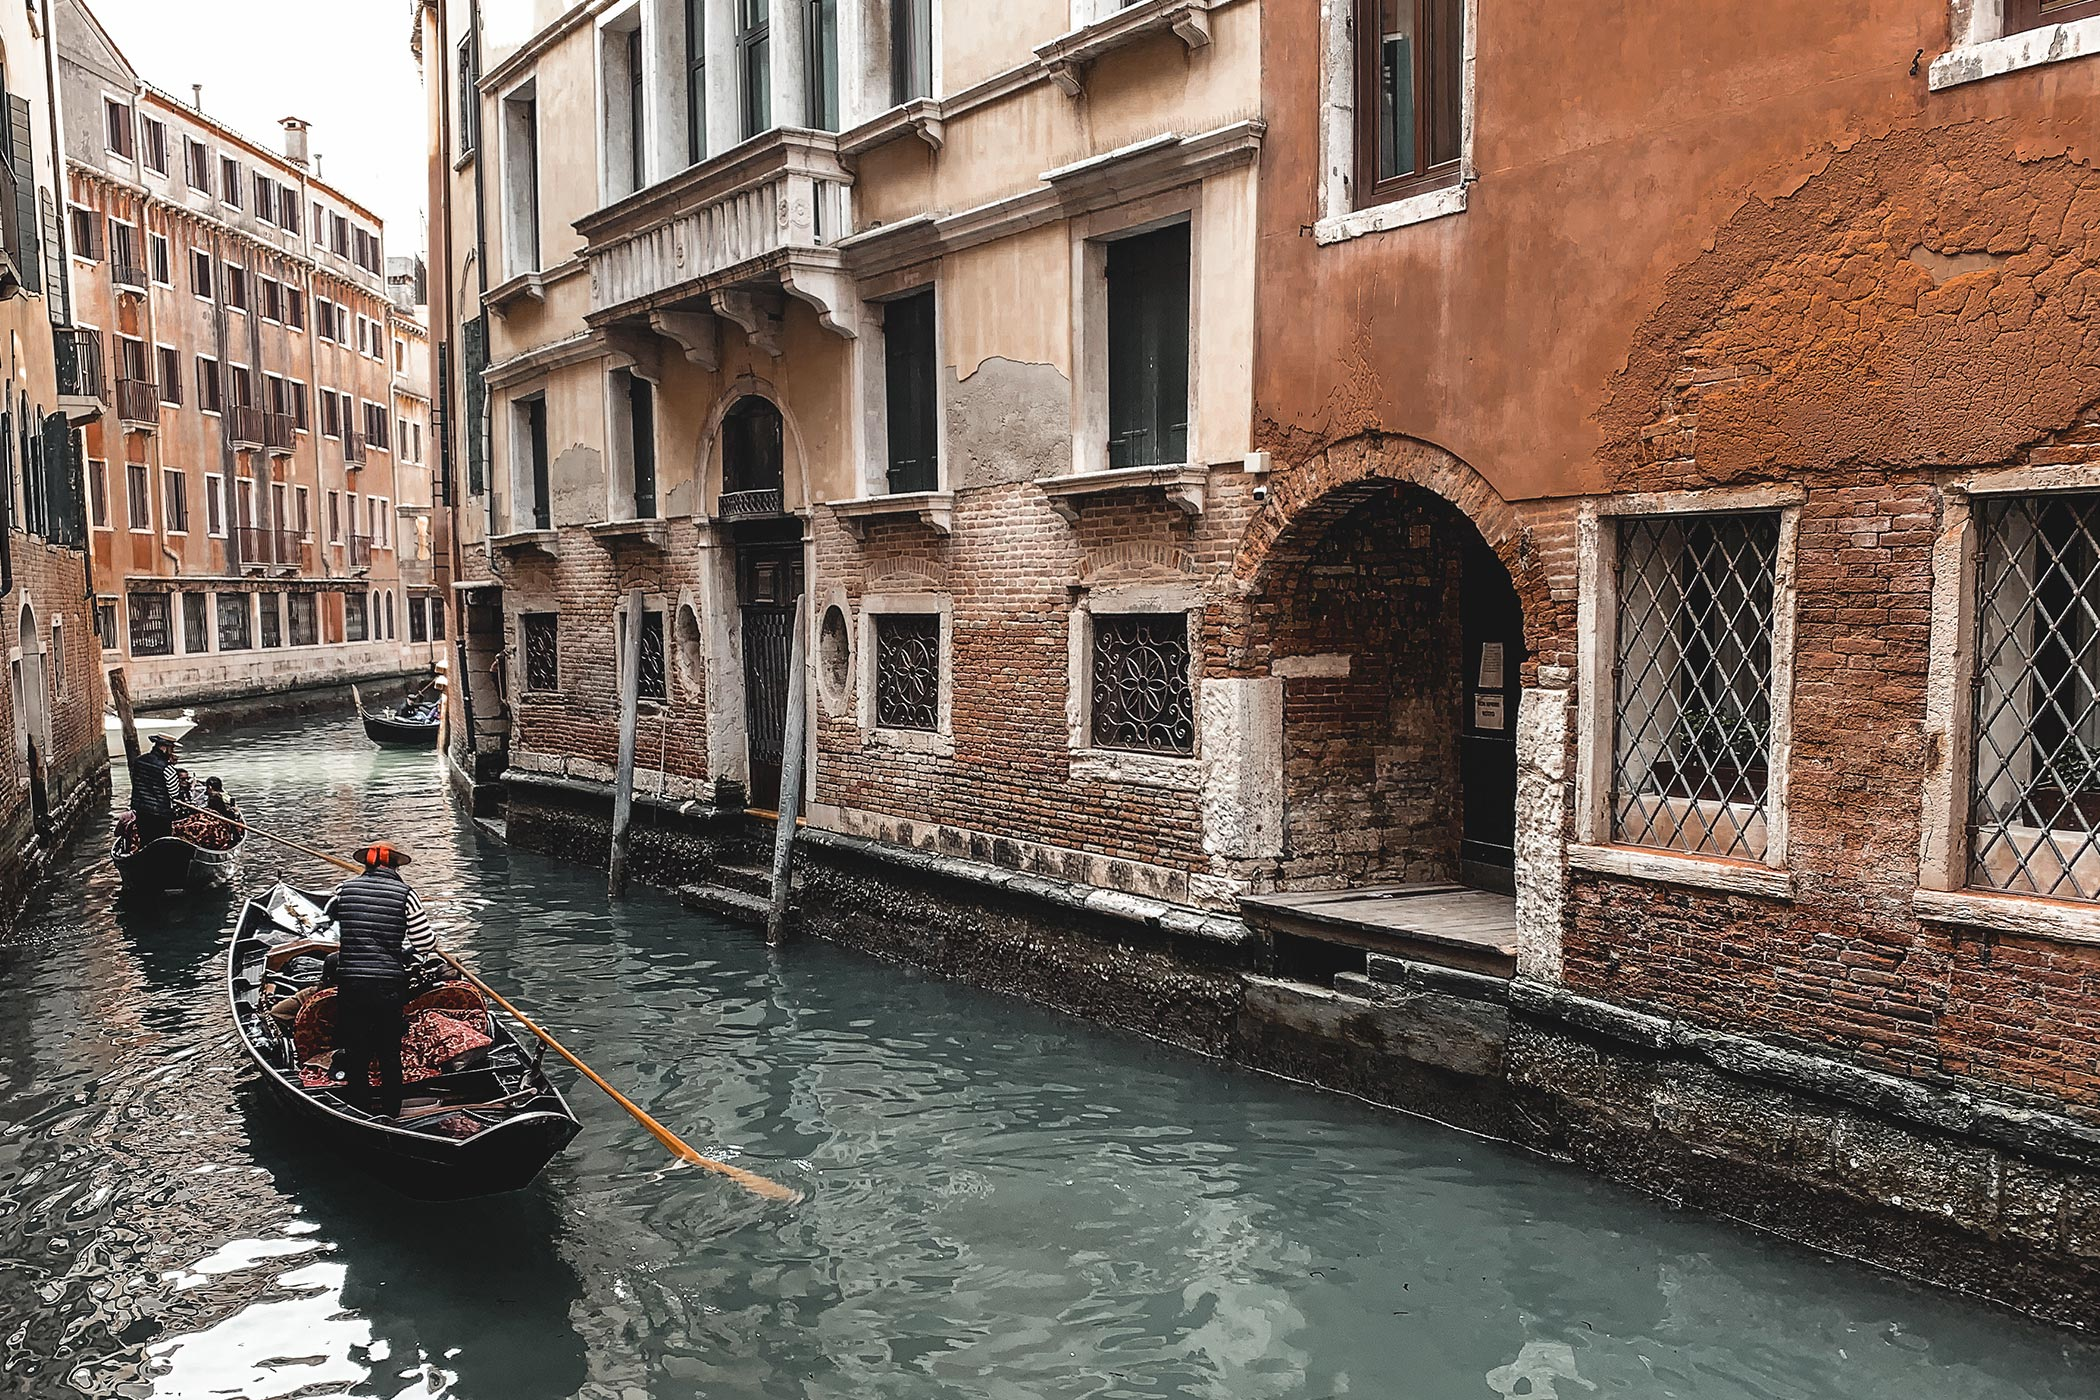 Venise, gondole, travel storyteller, travel writer, travel blog, trip in Venise, recap 2019 to fordward 2020.